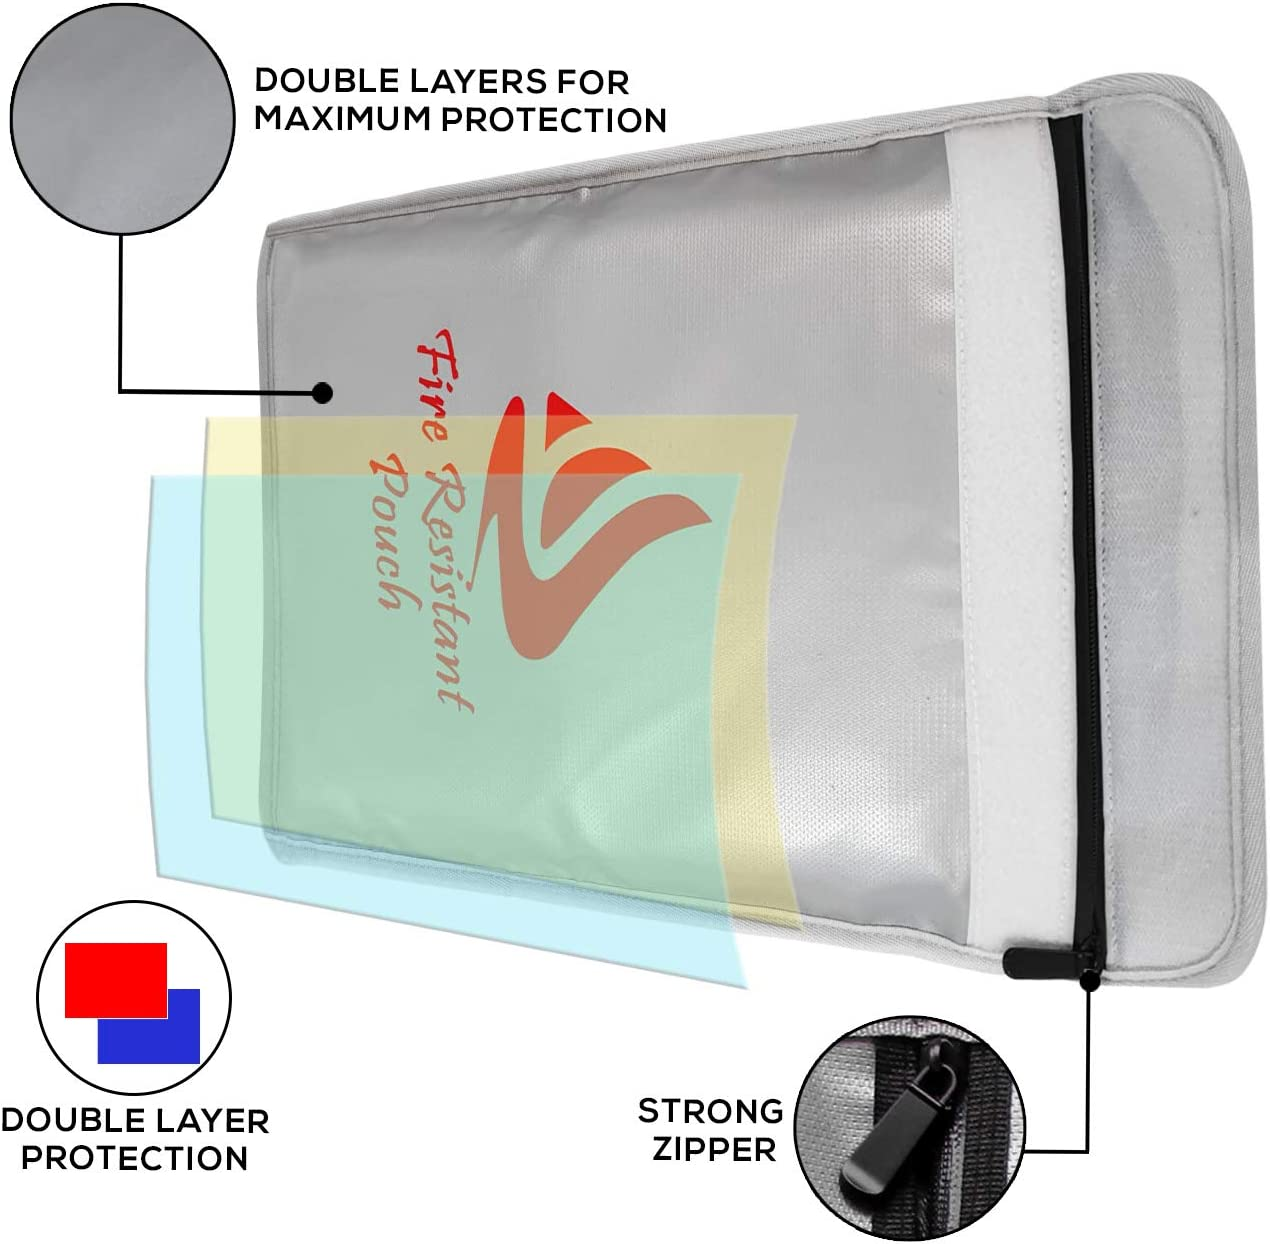 Fireproof Document Bags by DocuShelter Large 15 x 12 X 3.5 Waterproof Bag with Zipper Closure for Safe Storage of Valuables Non-Itchy Silicone Coated Money Bag with Pockets /& Handle